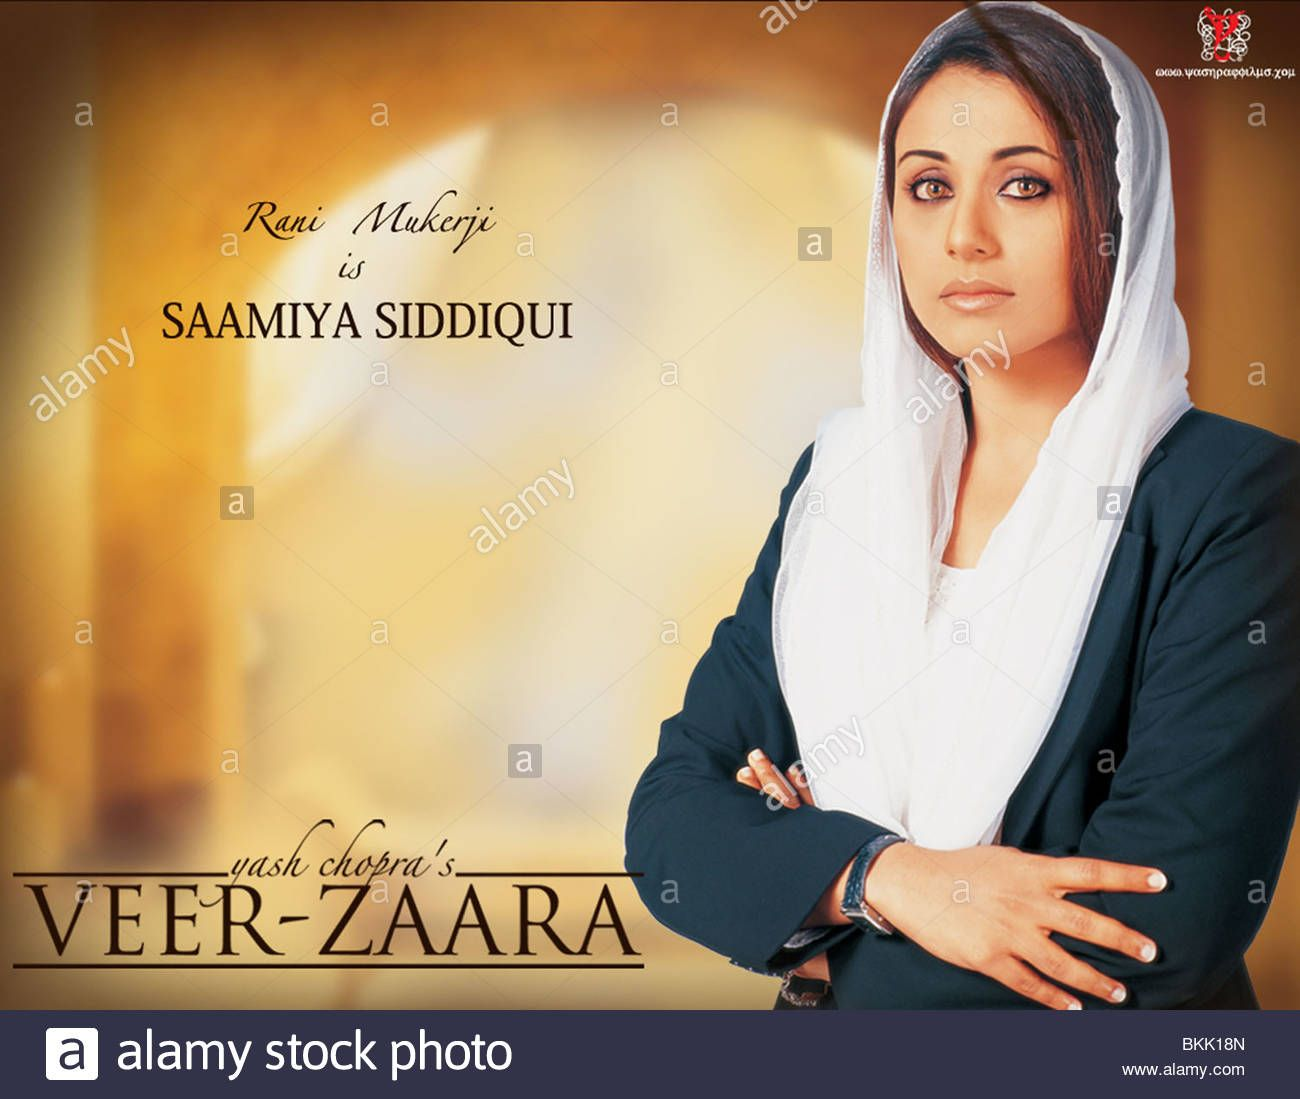 Download This Stock Image Veer Zaara 2004 Rani Mukerji Bollywood Veer 001 03 Bkk18n From Alamy S Library O Rani Mukerji Bollywood Indian Bollywood Actress